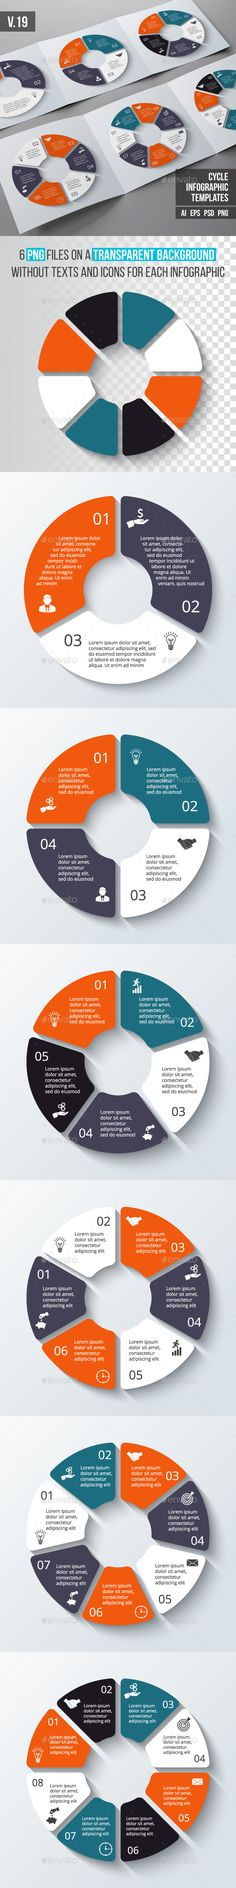 Infographics Template Set - PSD, Transparent PNG, Vector EPS, AI Illustrator